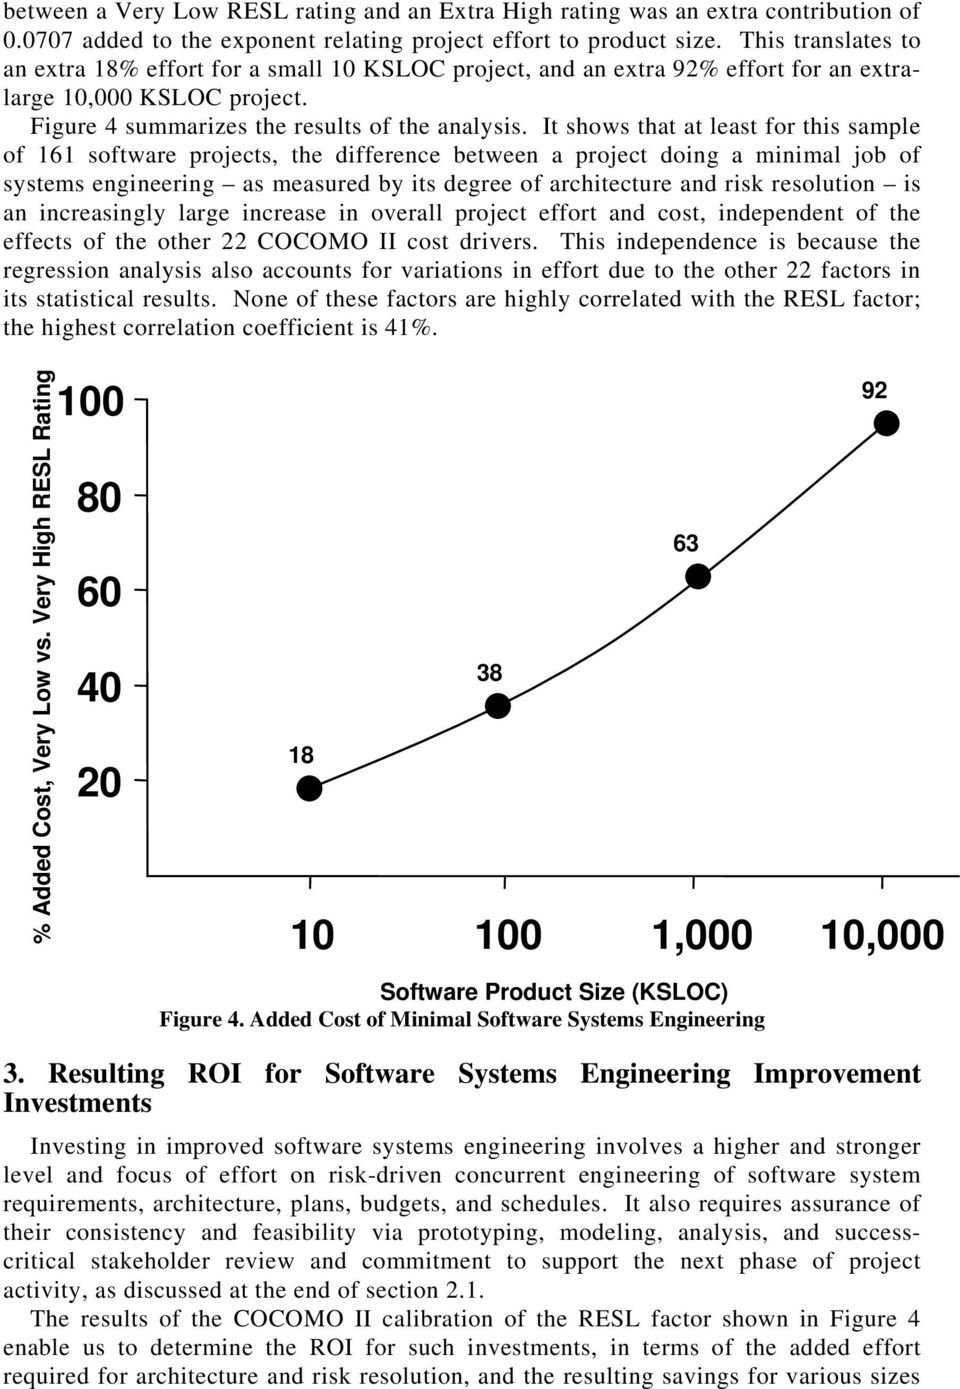 It shows that at least for this sample of 161 software projects, the difference between a project doing a minimal job of systems engineering as measured by its degree of architecture and risk